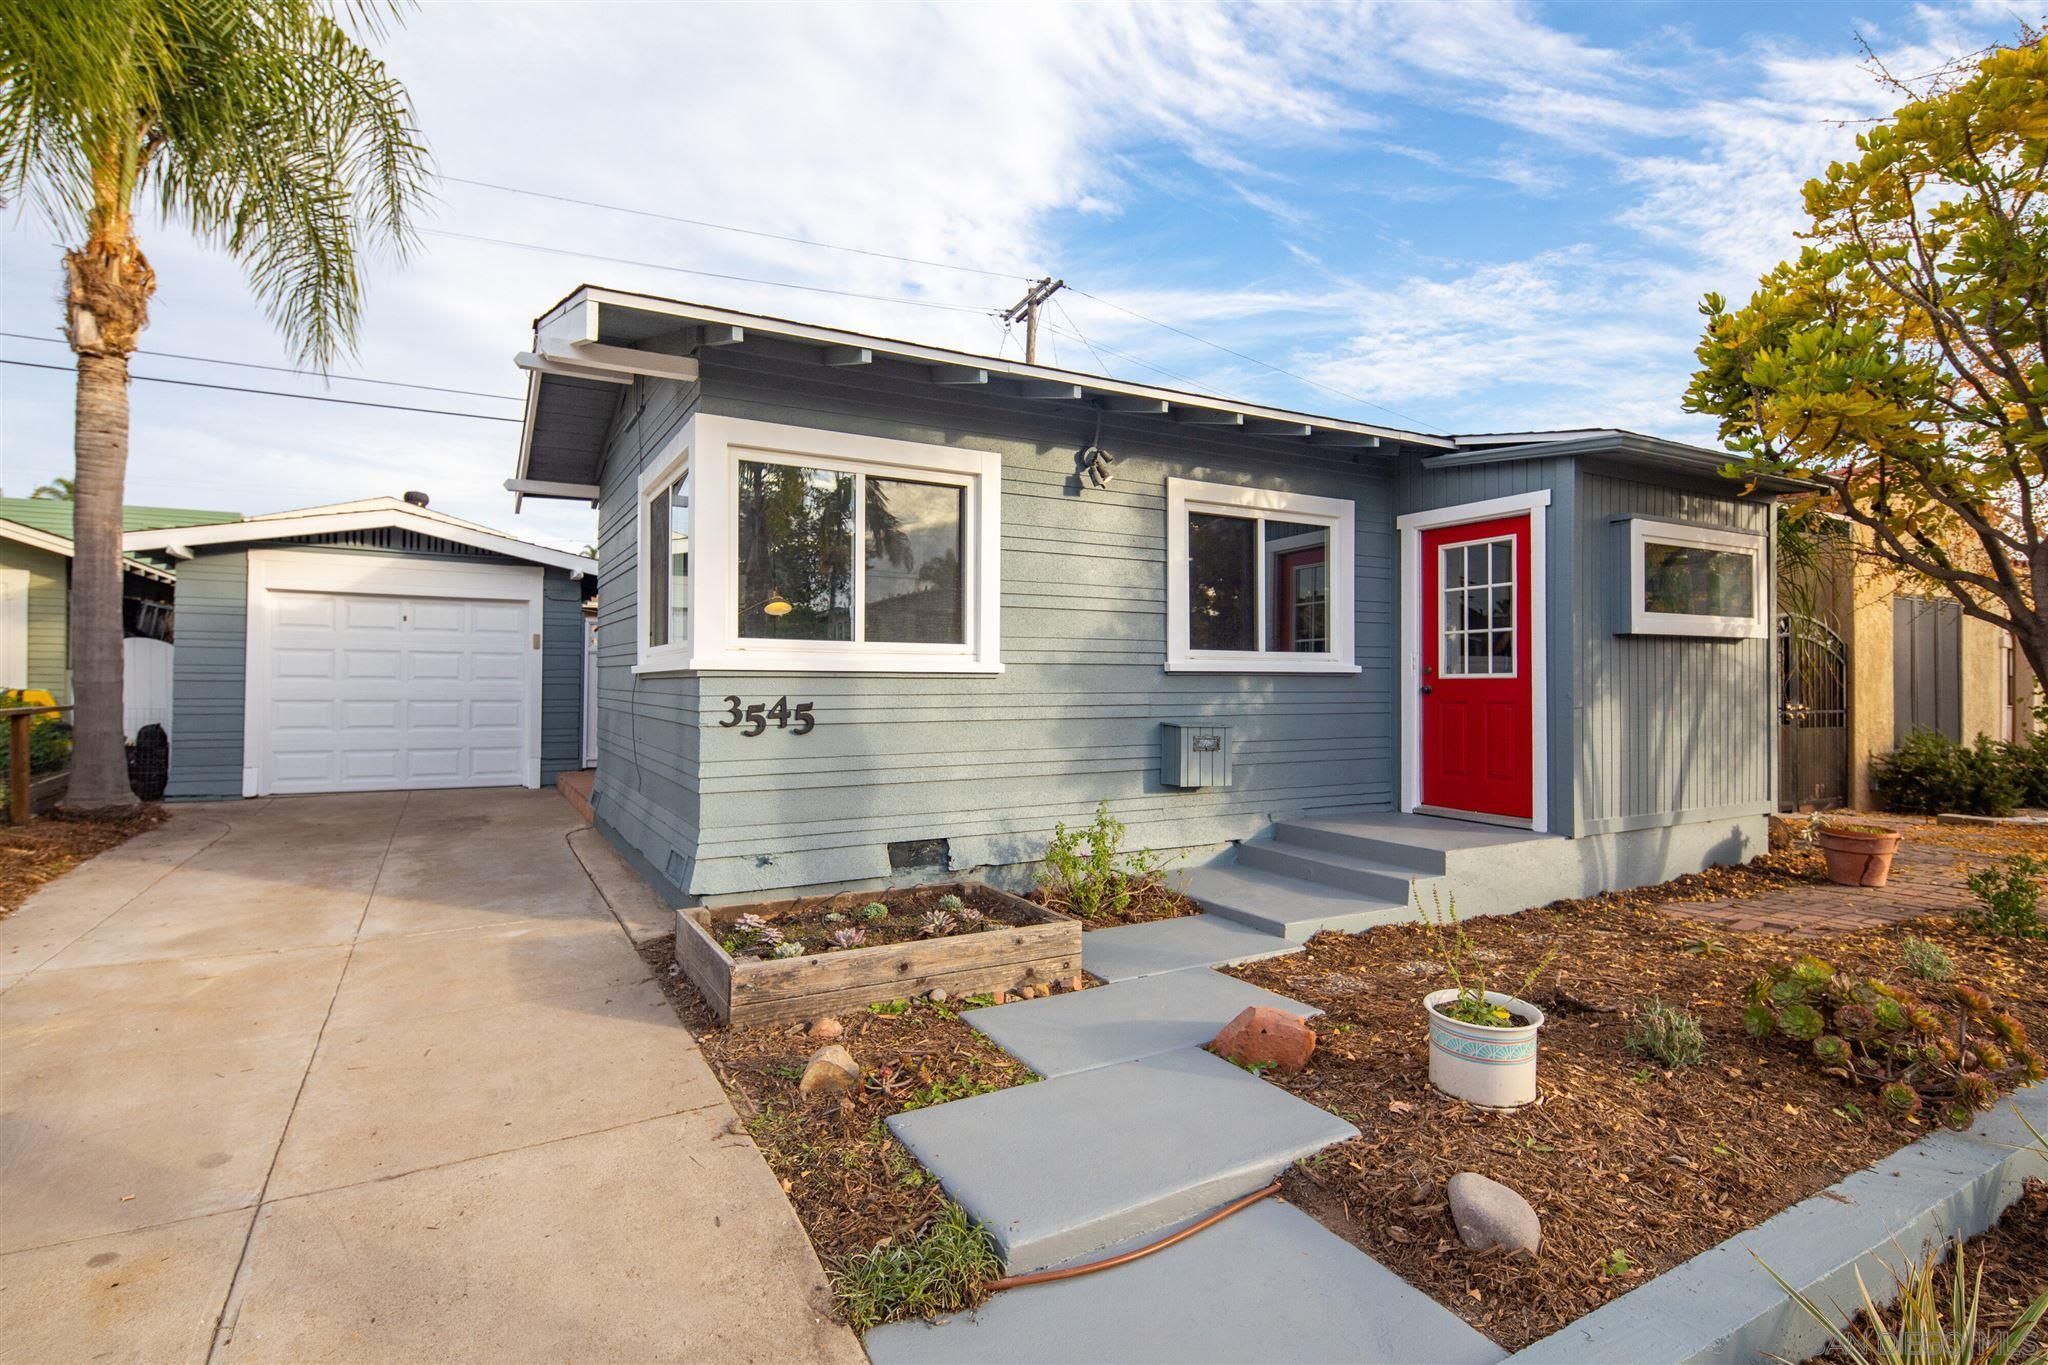 Main Photo: NORTH PARK House for sale : 2 bedrooms : 3545 Arizona St in San Diego